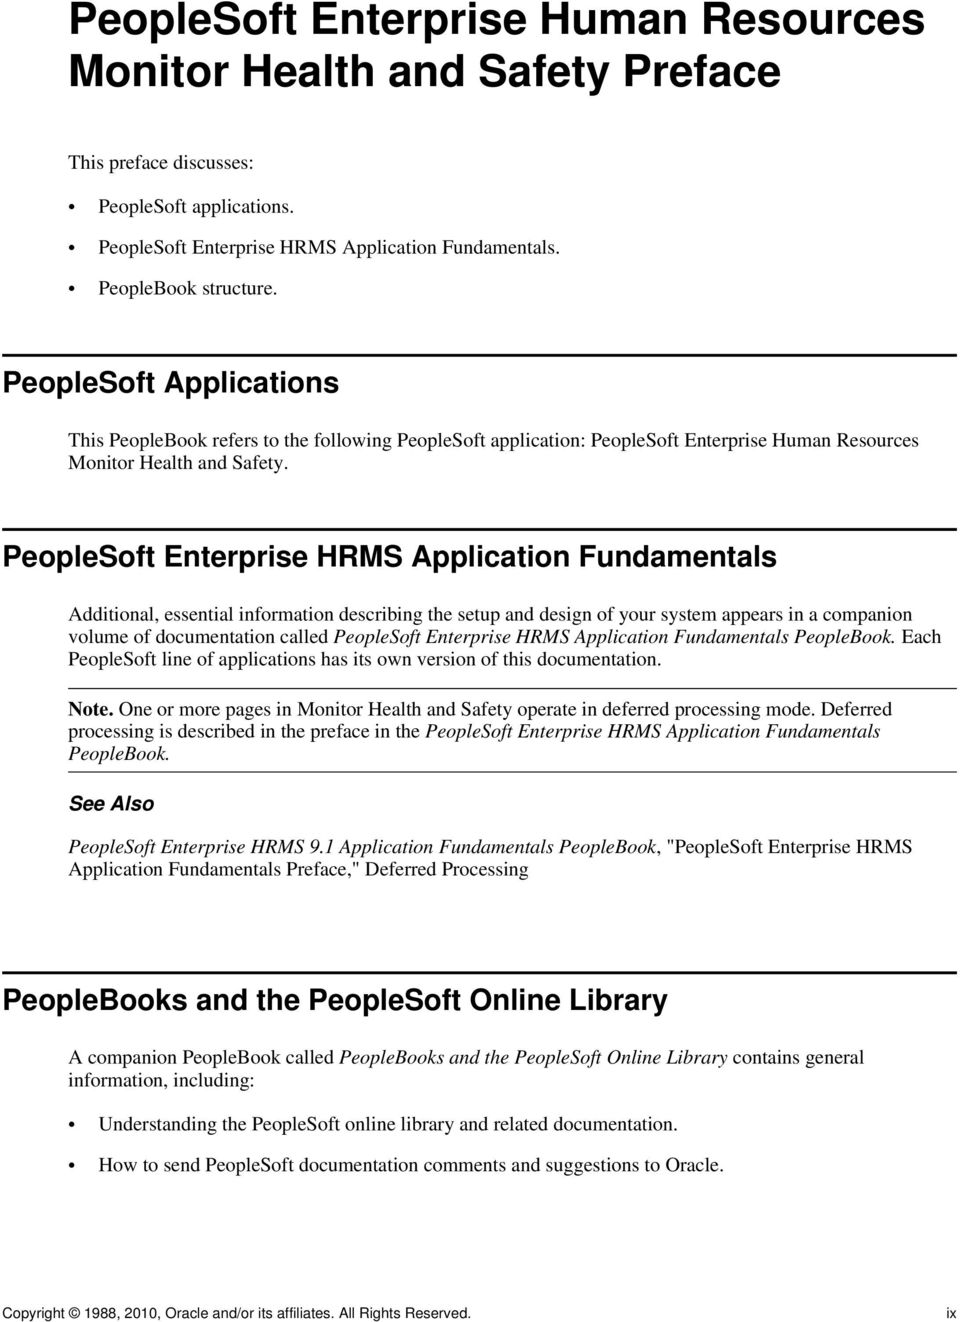 PeopleSoft Enterprise HRMS Application Fundamentals Additional, essential information describing the setup and design of your system appears in a companion volume of documentation called PeopleSoft